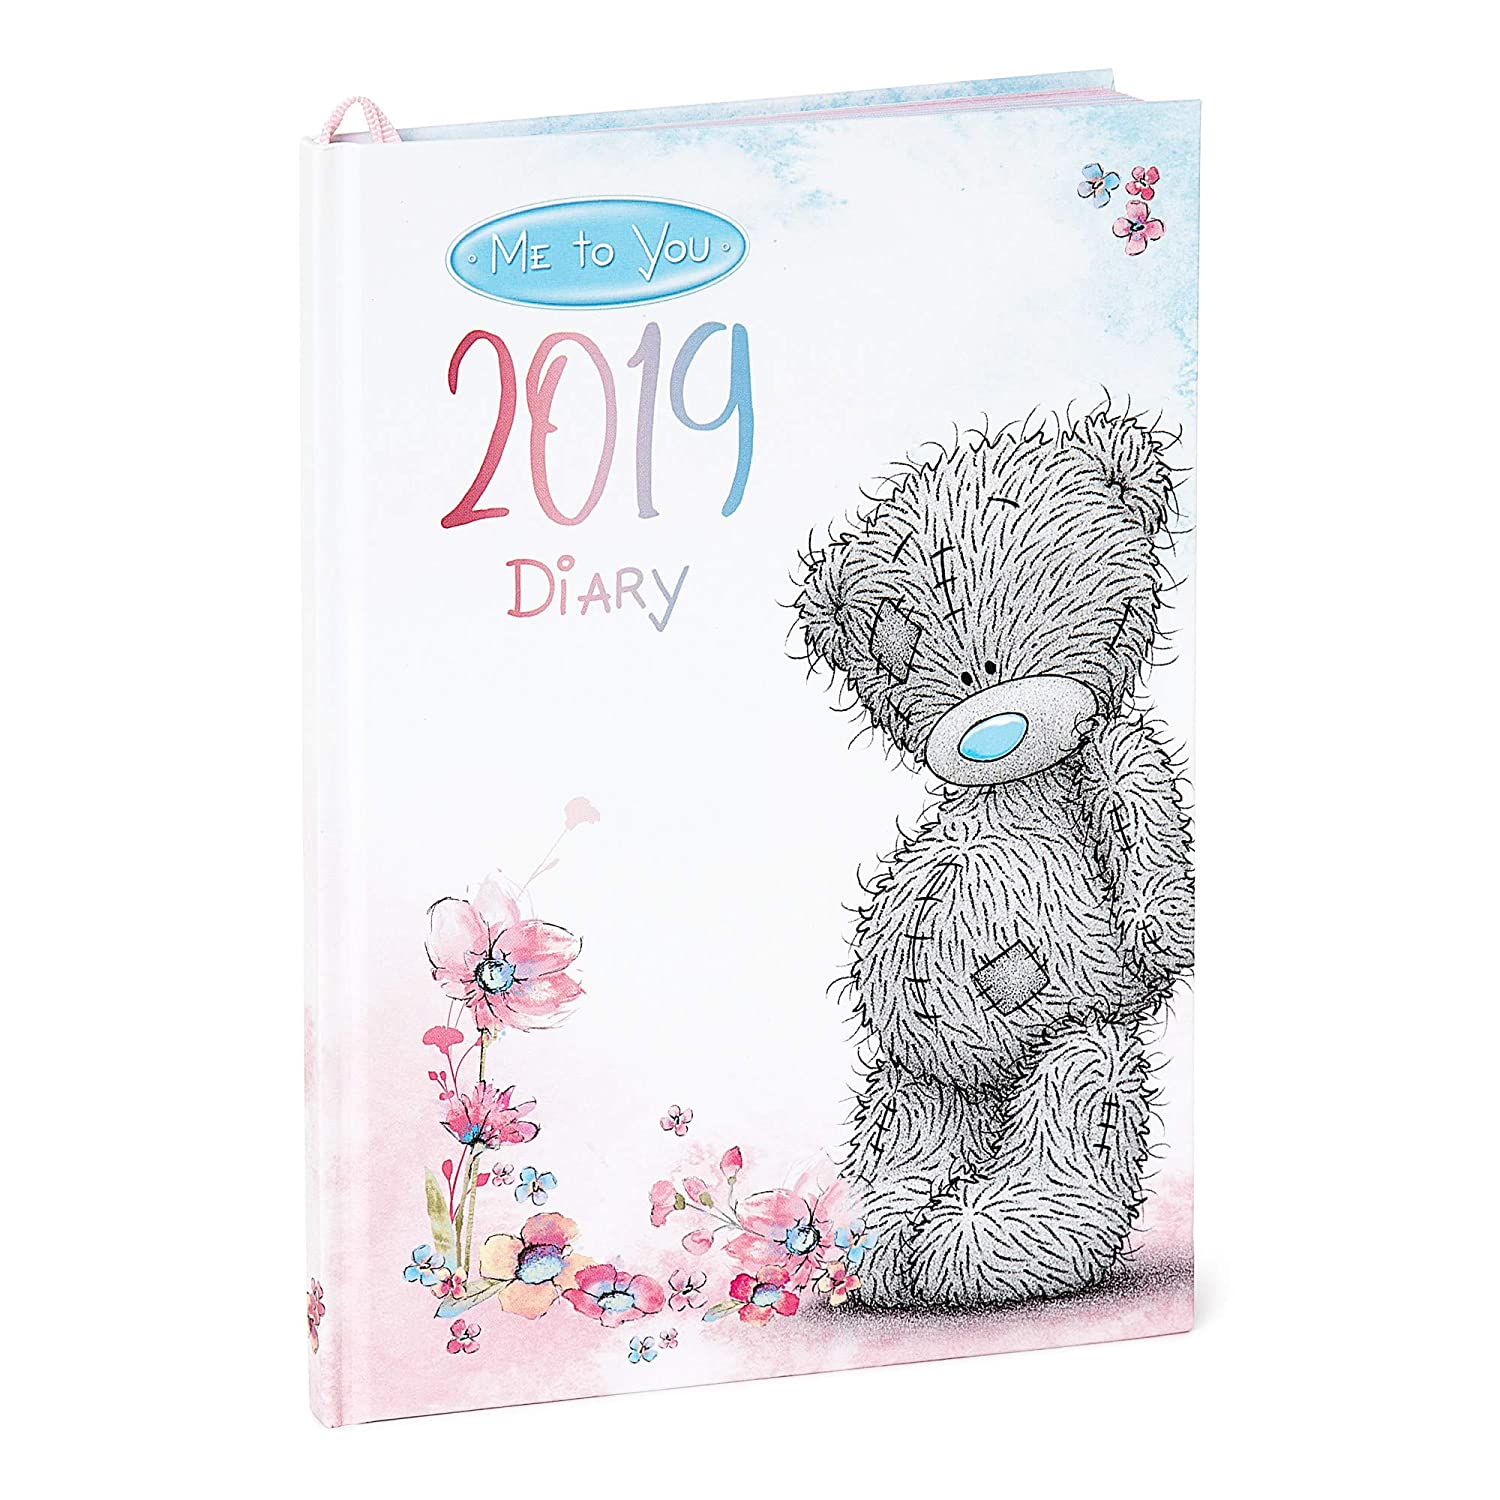 Me to You Tatty Teddy 2019 Tagebuch A5 Carte Blanche Greetings XDA01001